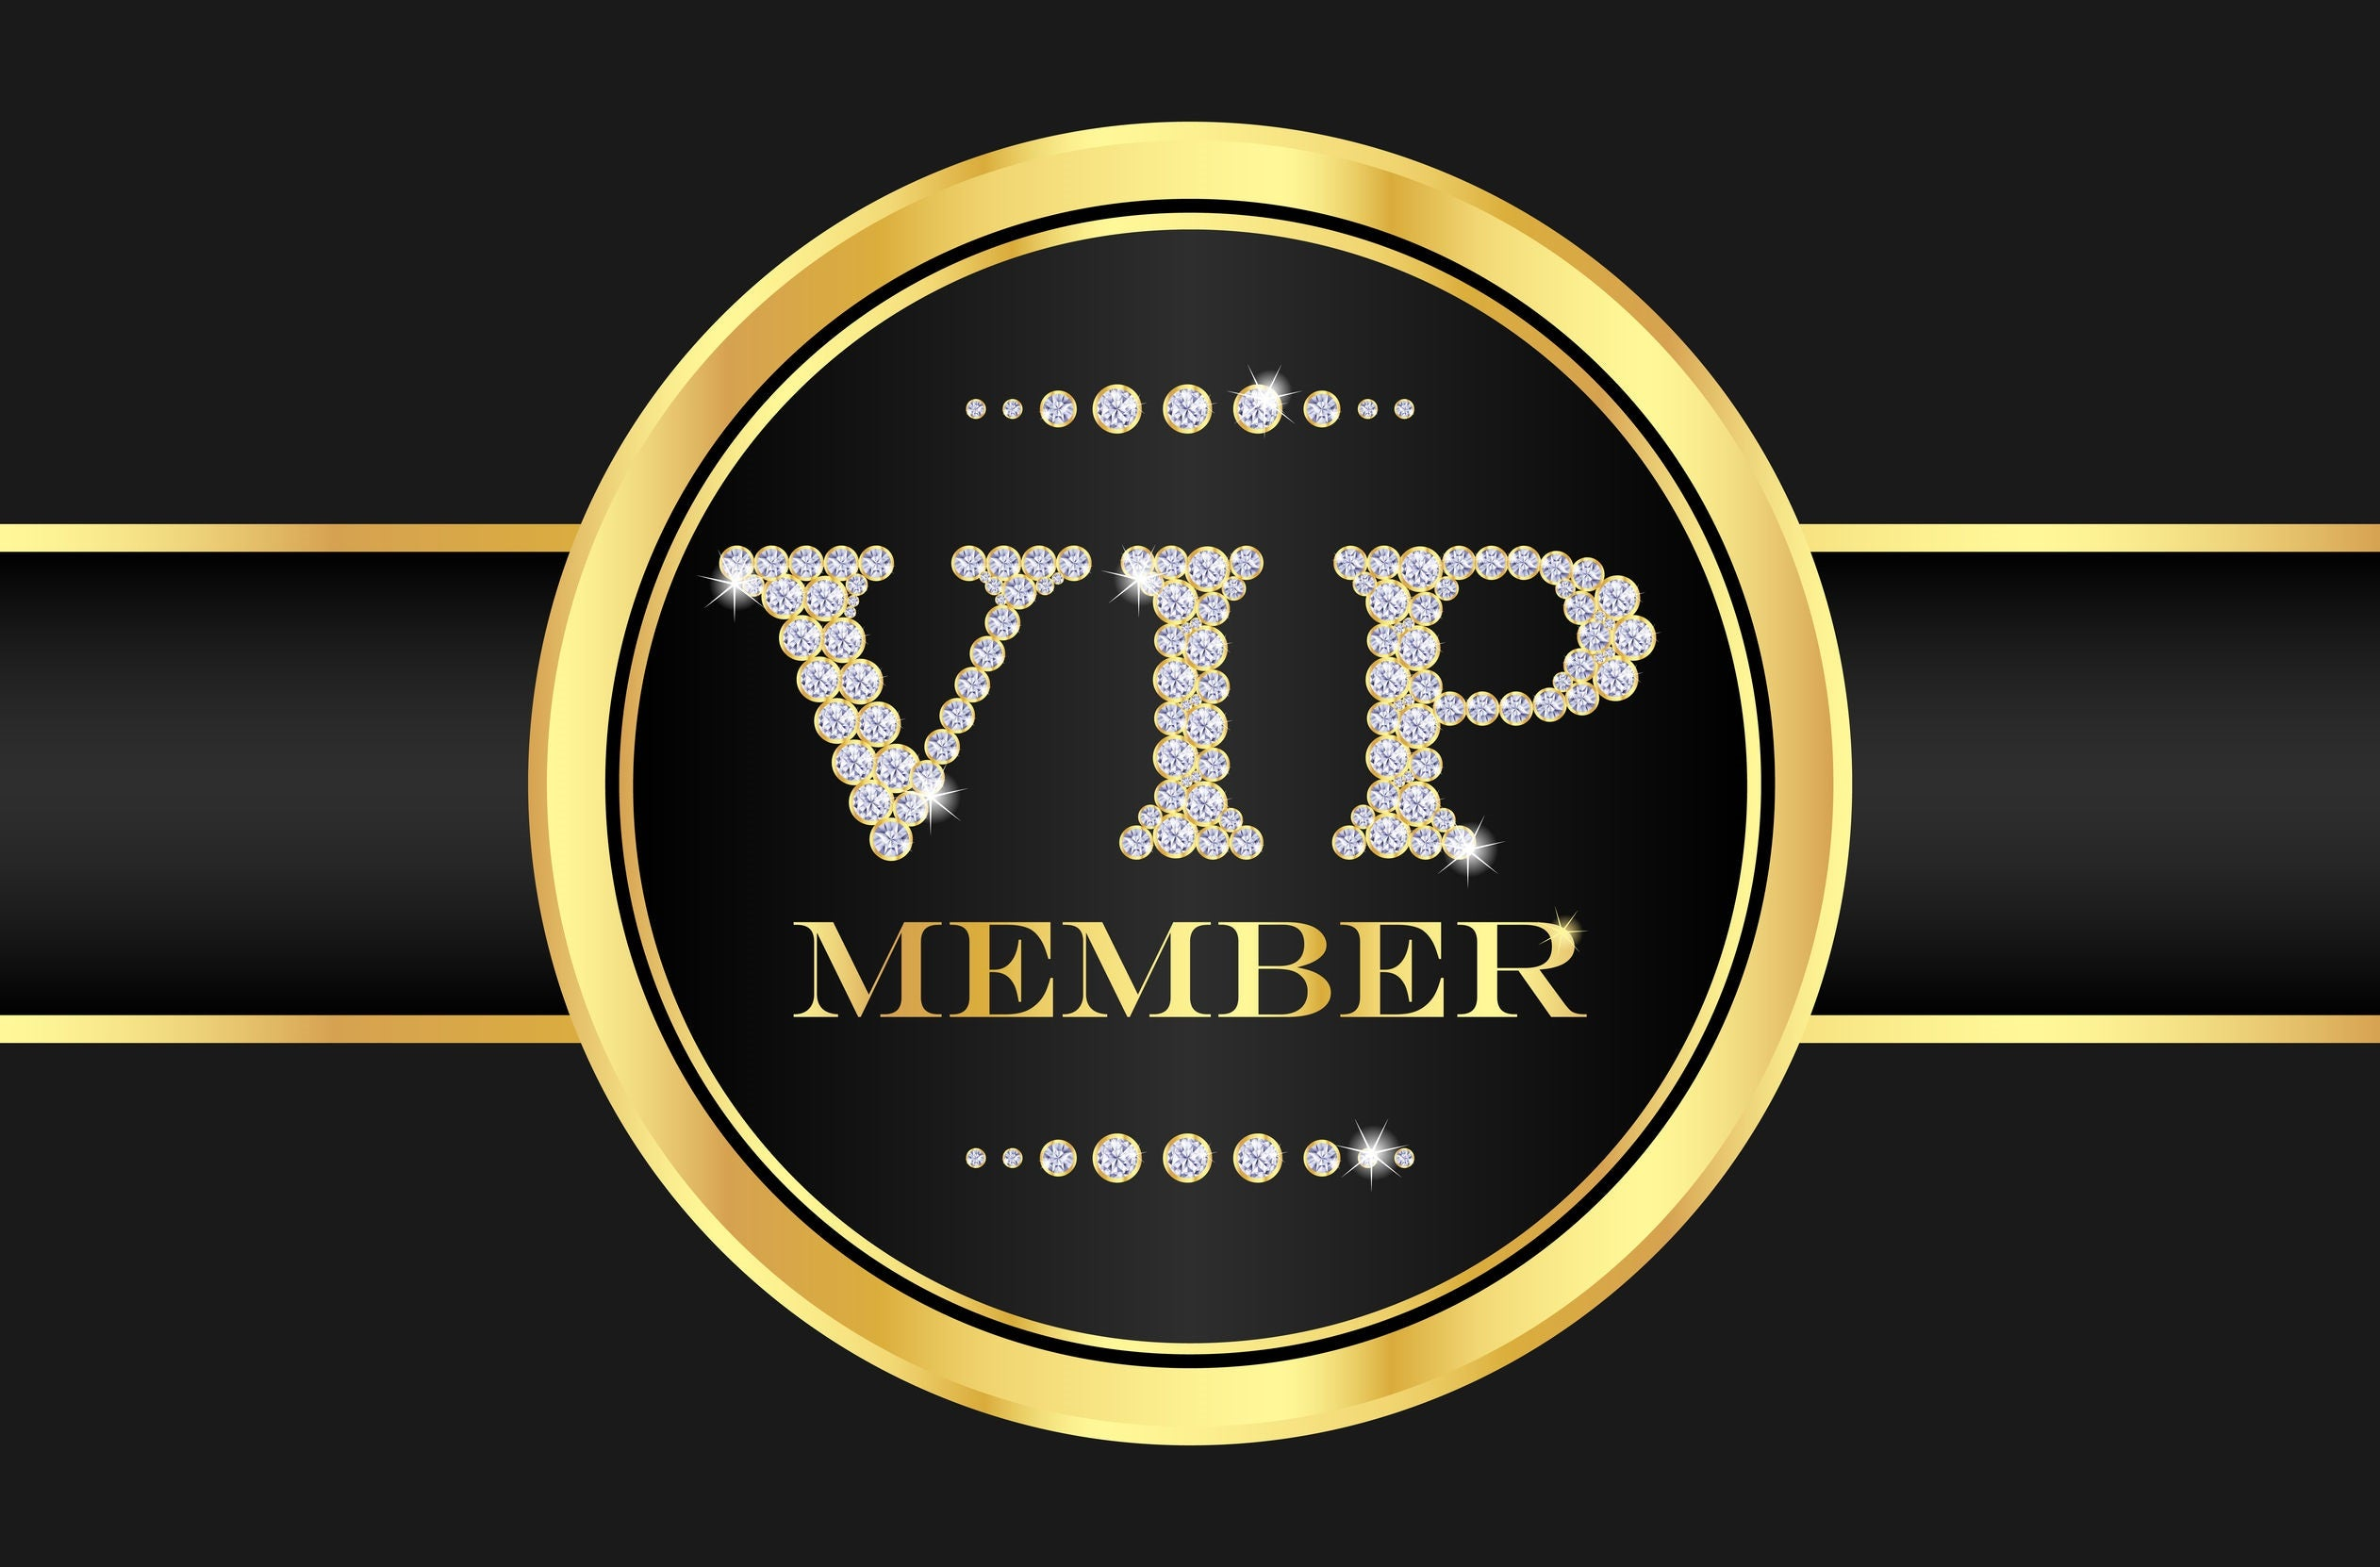 $1,250 UNLIMITED CE HOUR VIP PACKAGE (Until July 31, 2019)